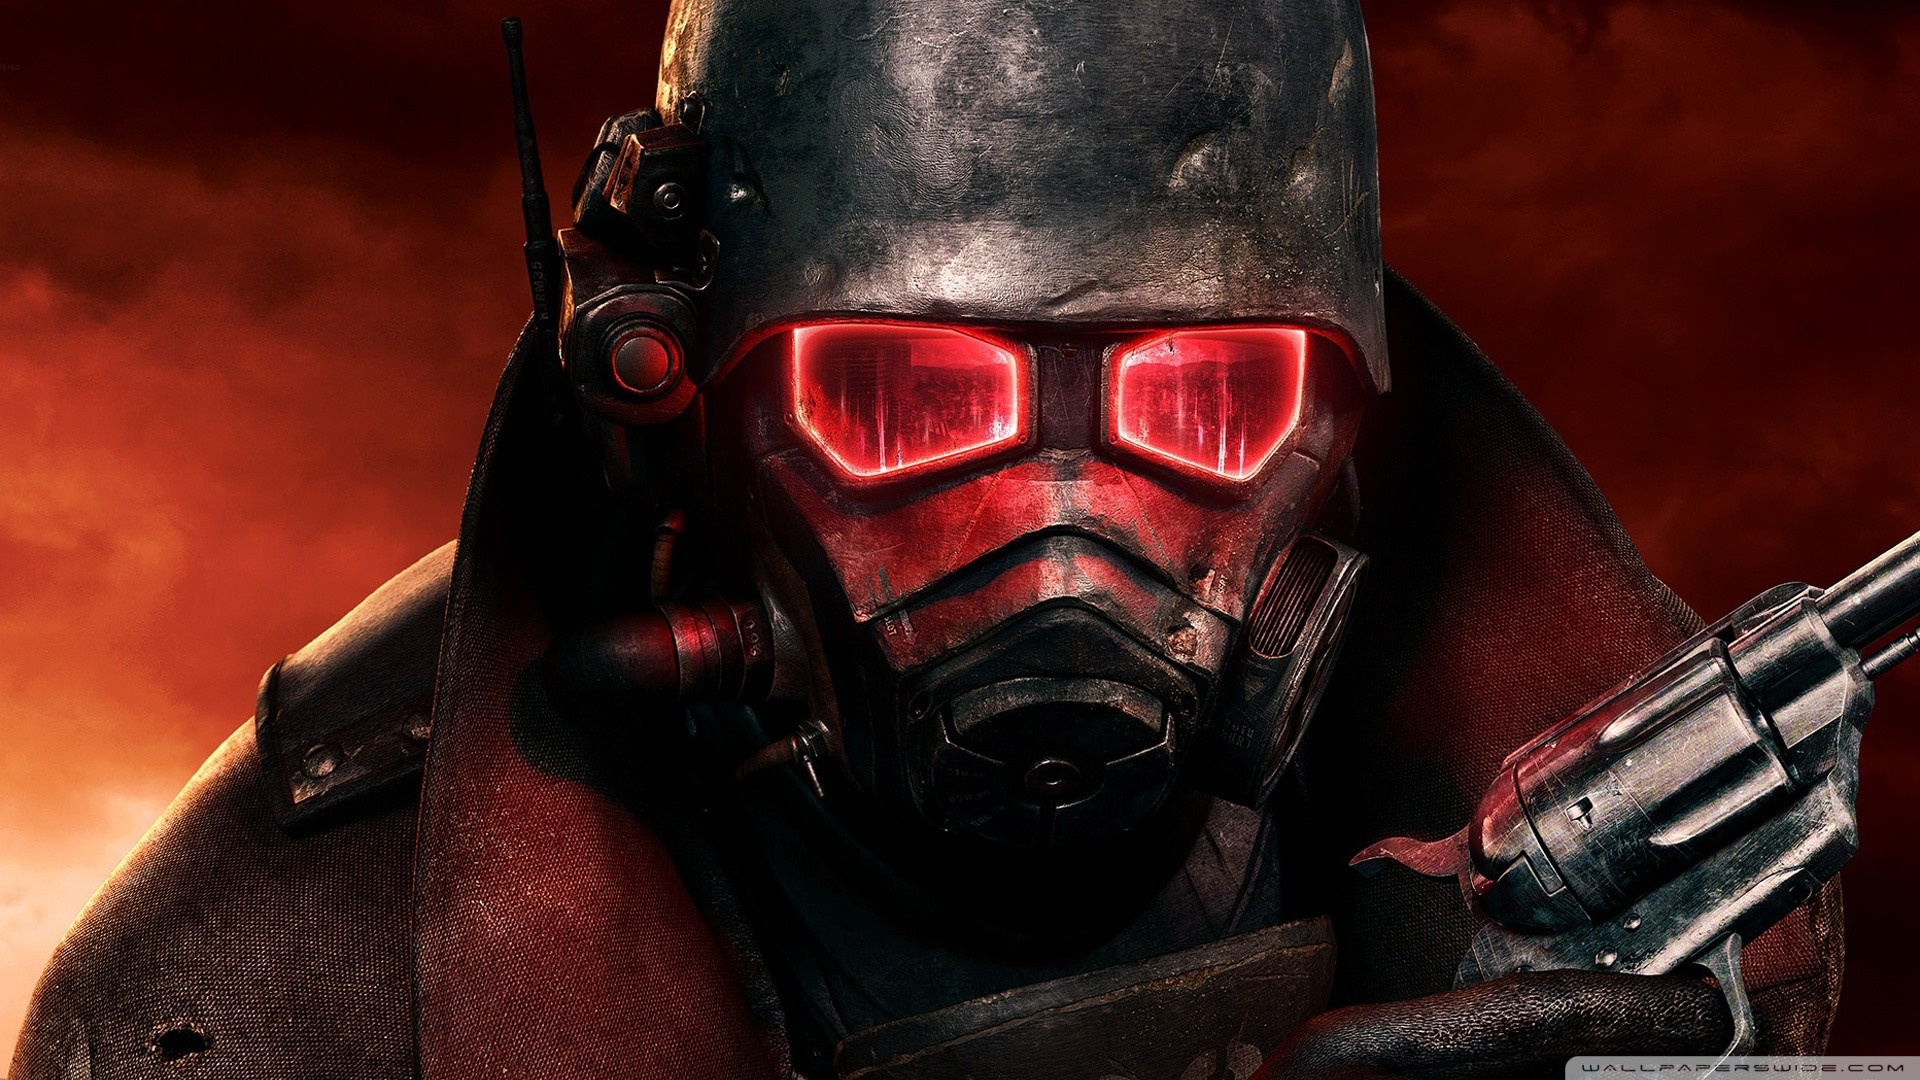 1920x1200 Fallout New Vegas Wallpapers